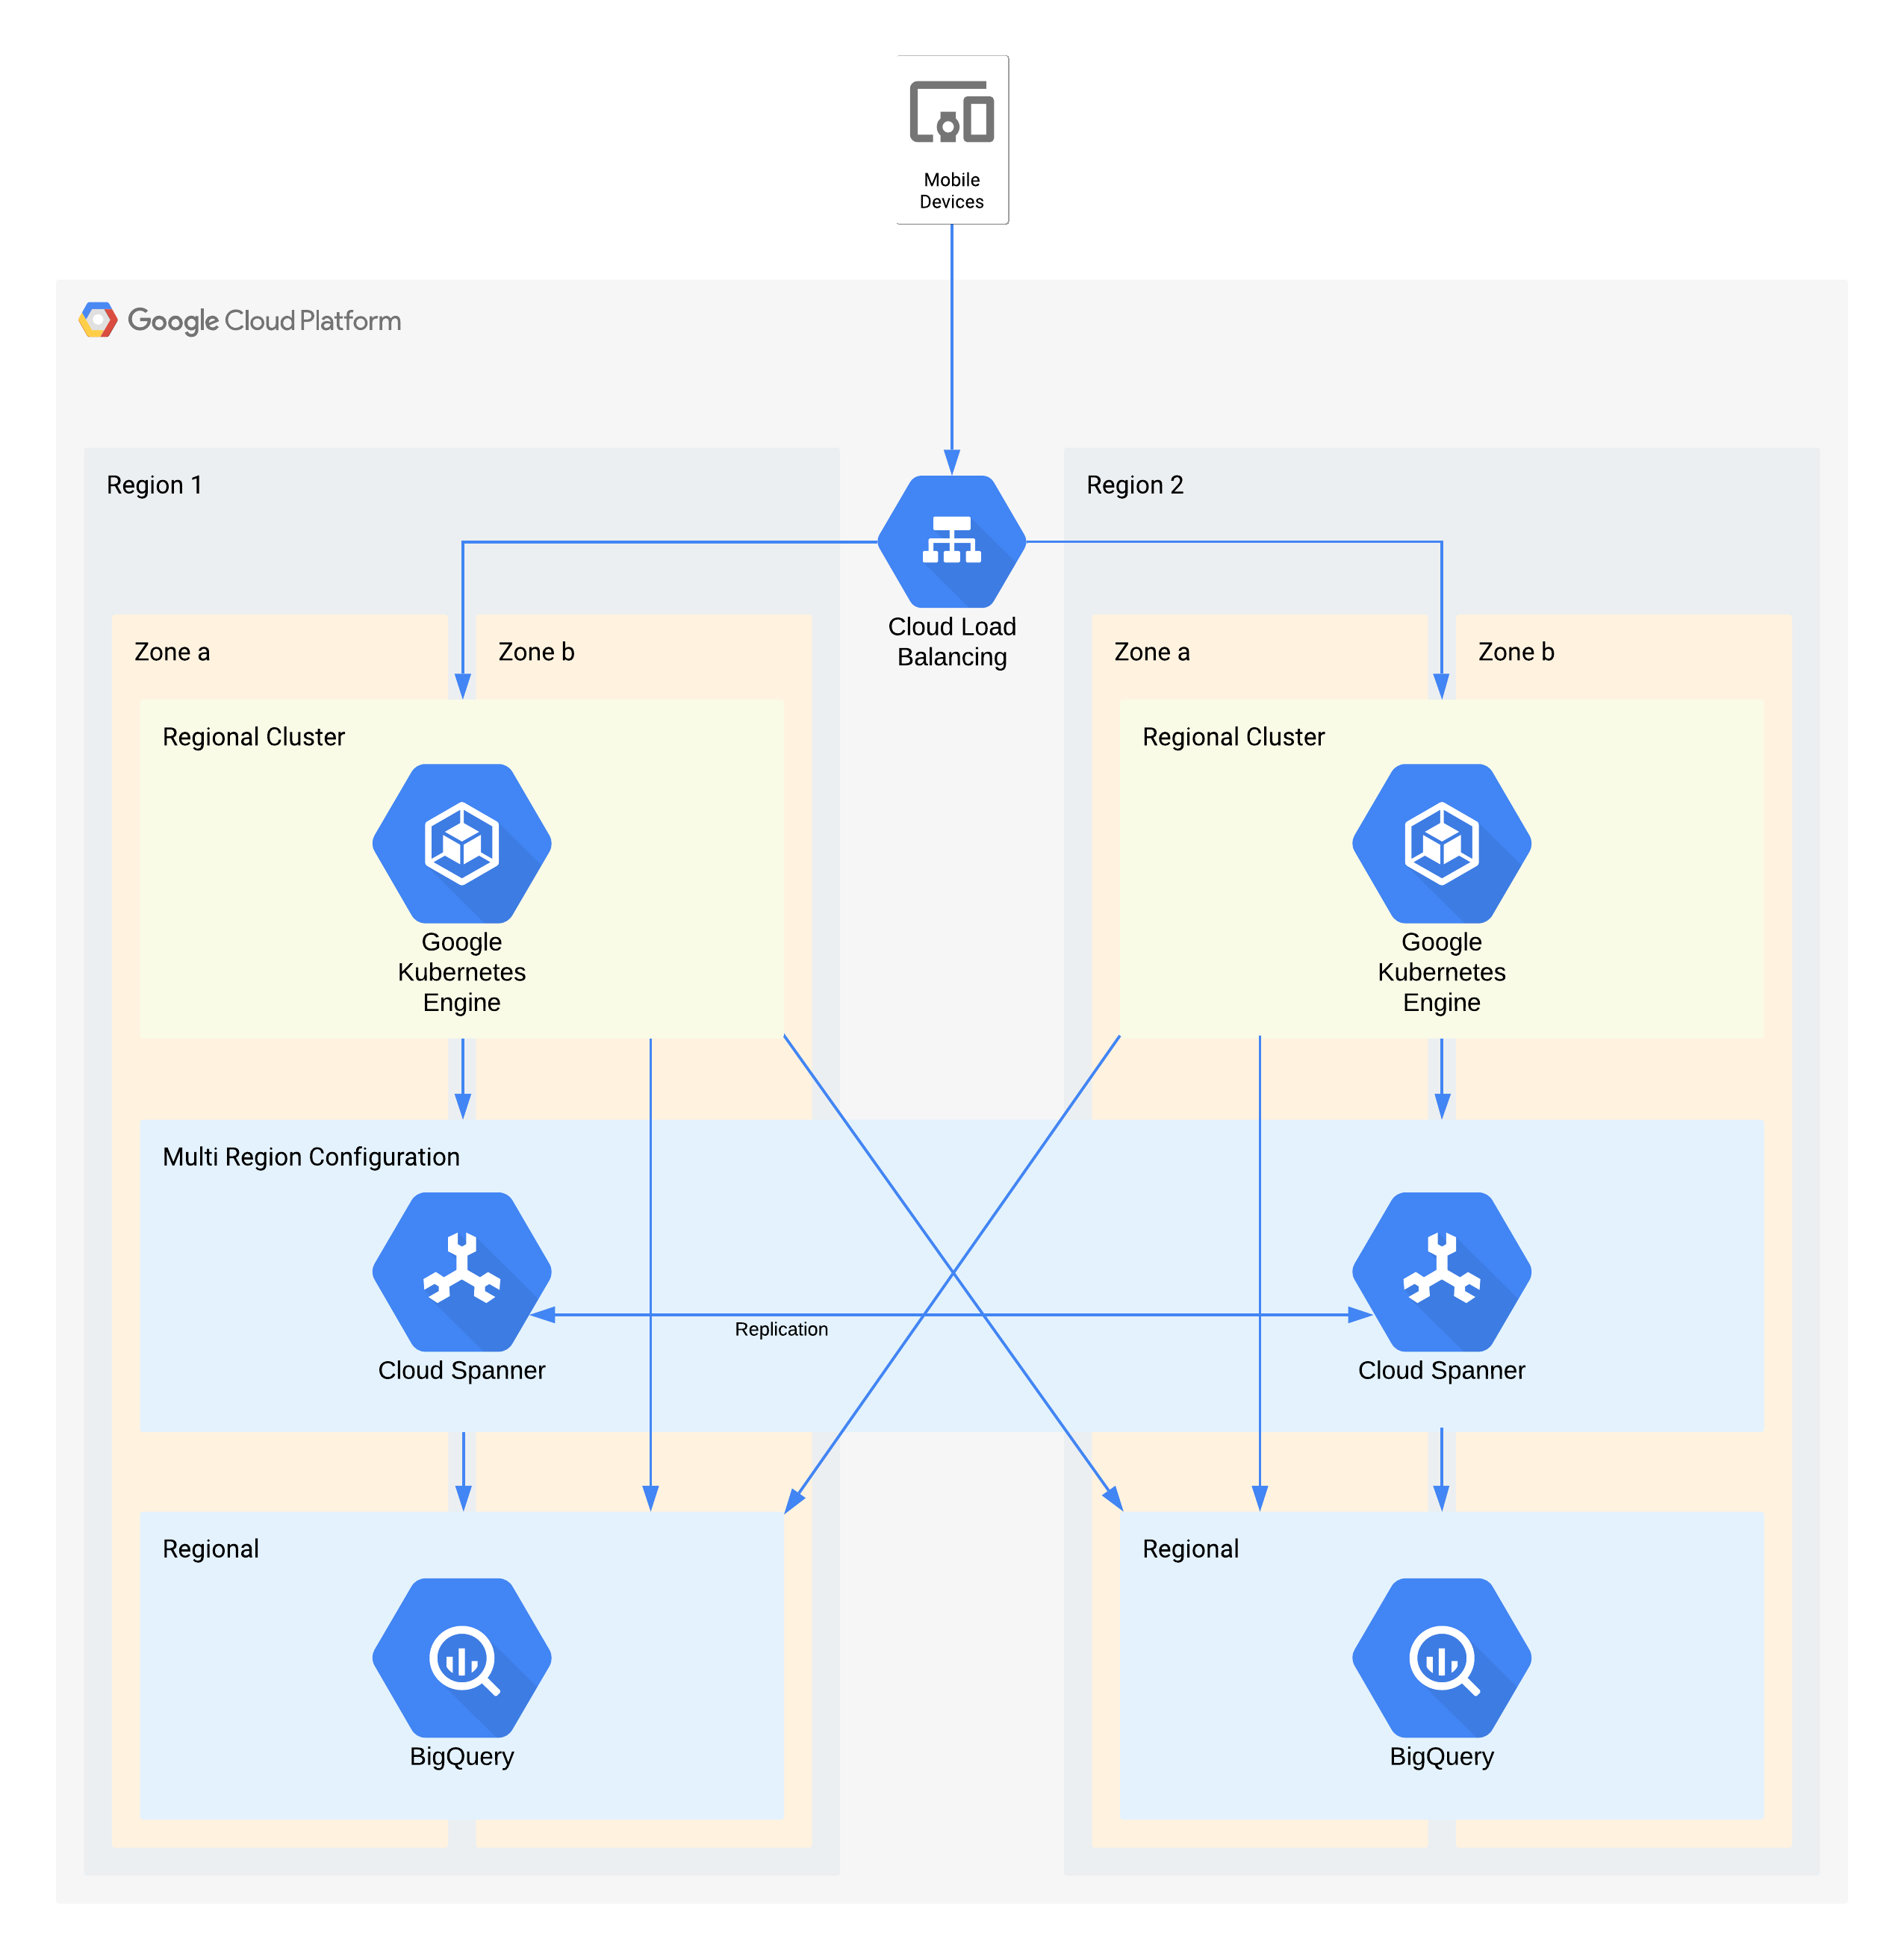 An example tier 1 architecture using Google Cloud products